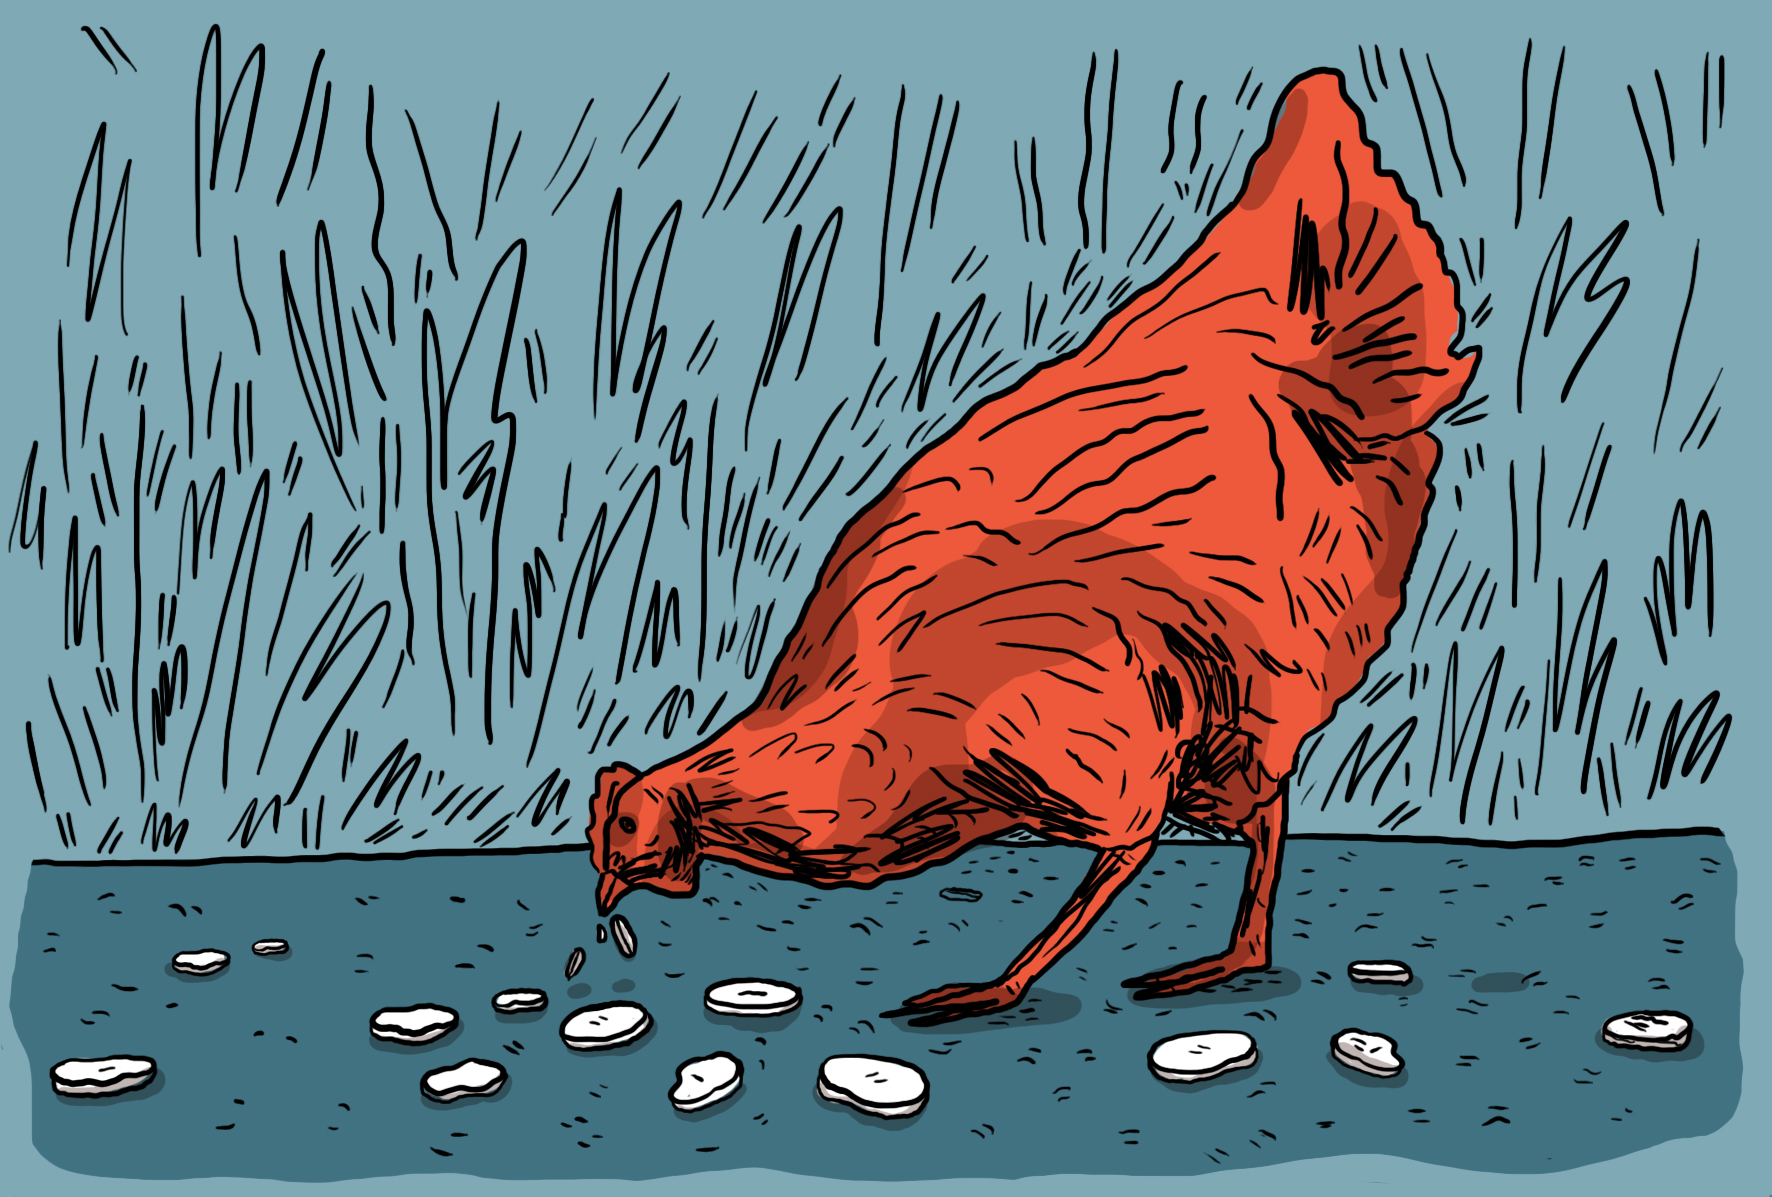 https://www.streetpress.com/sites/default/files/illustration-la-poule.jpg